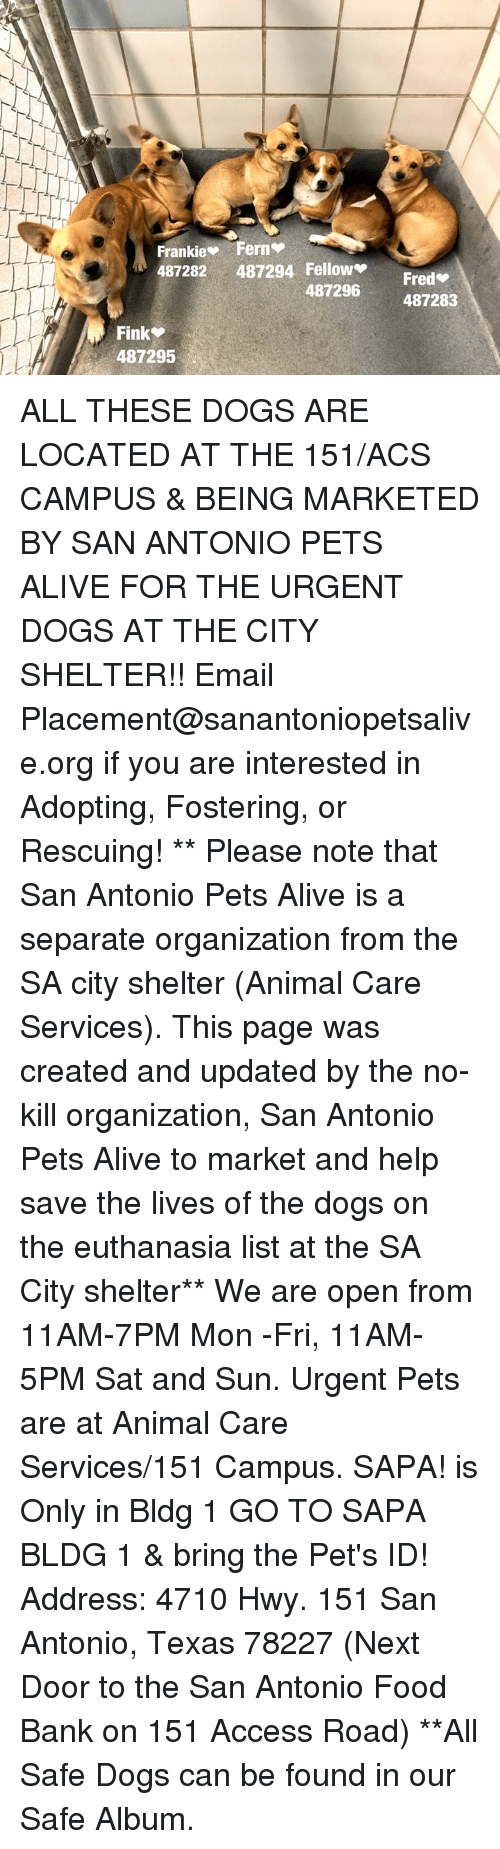 Alive, Dogs, and Food: Frankie Ferns  487282 487294 Fellow  Fred  487296  487283  Fink  487295 ALL THESE DOGS ARE LOCATED AT THE 151/ACS CAMPUS & BEING MARKETED BY SAN ANTONIO PETS ALIVE FOR THE URGENT DOGS AT THE CITY SHELTER!!  Email Placement@sanantoniopetsalive.org if you are interested in Adopting, Fostering, or Rescuing!                                                                                                                                                                                                                                                                                                                                                             ** Please note that San Antonio Pets Alive is a separate organization from the SA city shelter (Animal Care Services). This page was created and updated by the no-kill organization, San Antonio Pets Alive to market and help save the lives of the dogs on the euthanasia list at the SA City shelter**  We are open from 11AM-7PM Mon -Fri, 11AM-5PM Sat and Sun. Urgent Pets are at Animal Care Services/151 Campus. SAPA! is Only in Bldg 1 GO TO SAPA BLDG 1 & bring the Pet's ID! Address: 4710 Hwy. 151 San Antonio, Texas 78227 (Next Door to the San Antonio Food Bank on 151 Access Road) **All Safe Dogs can be found in our Safe Album.